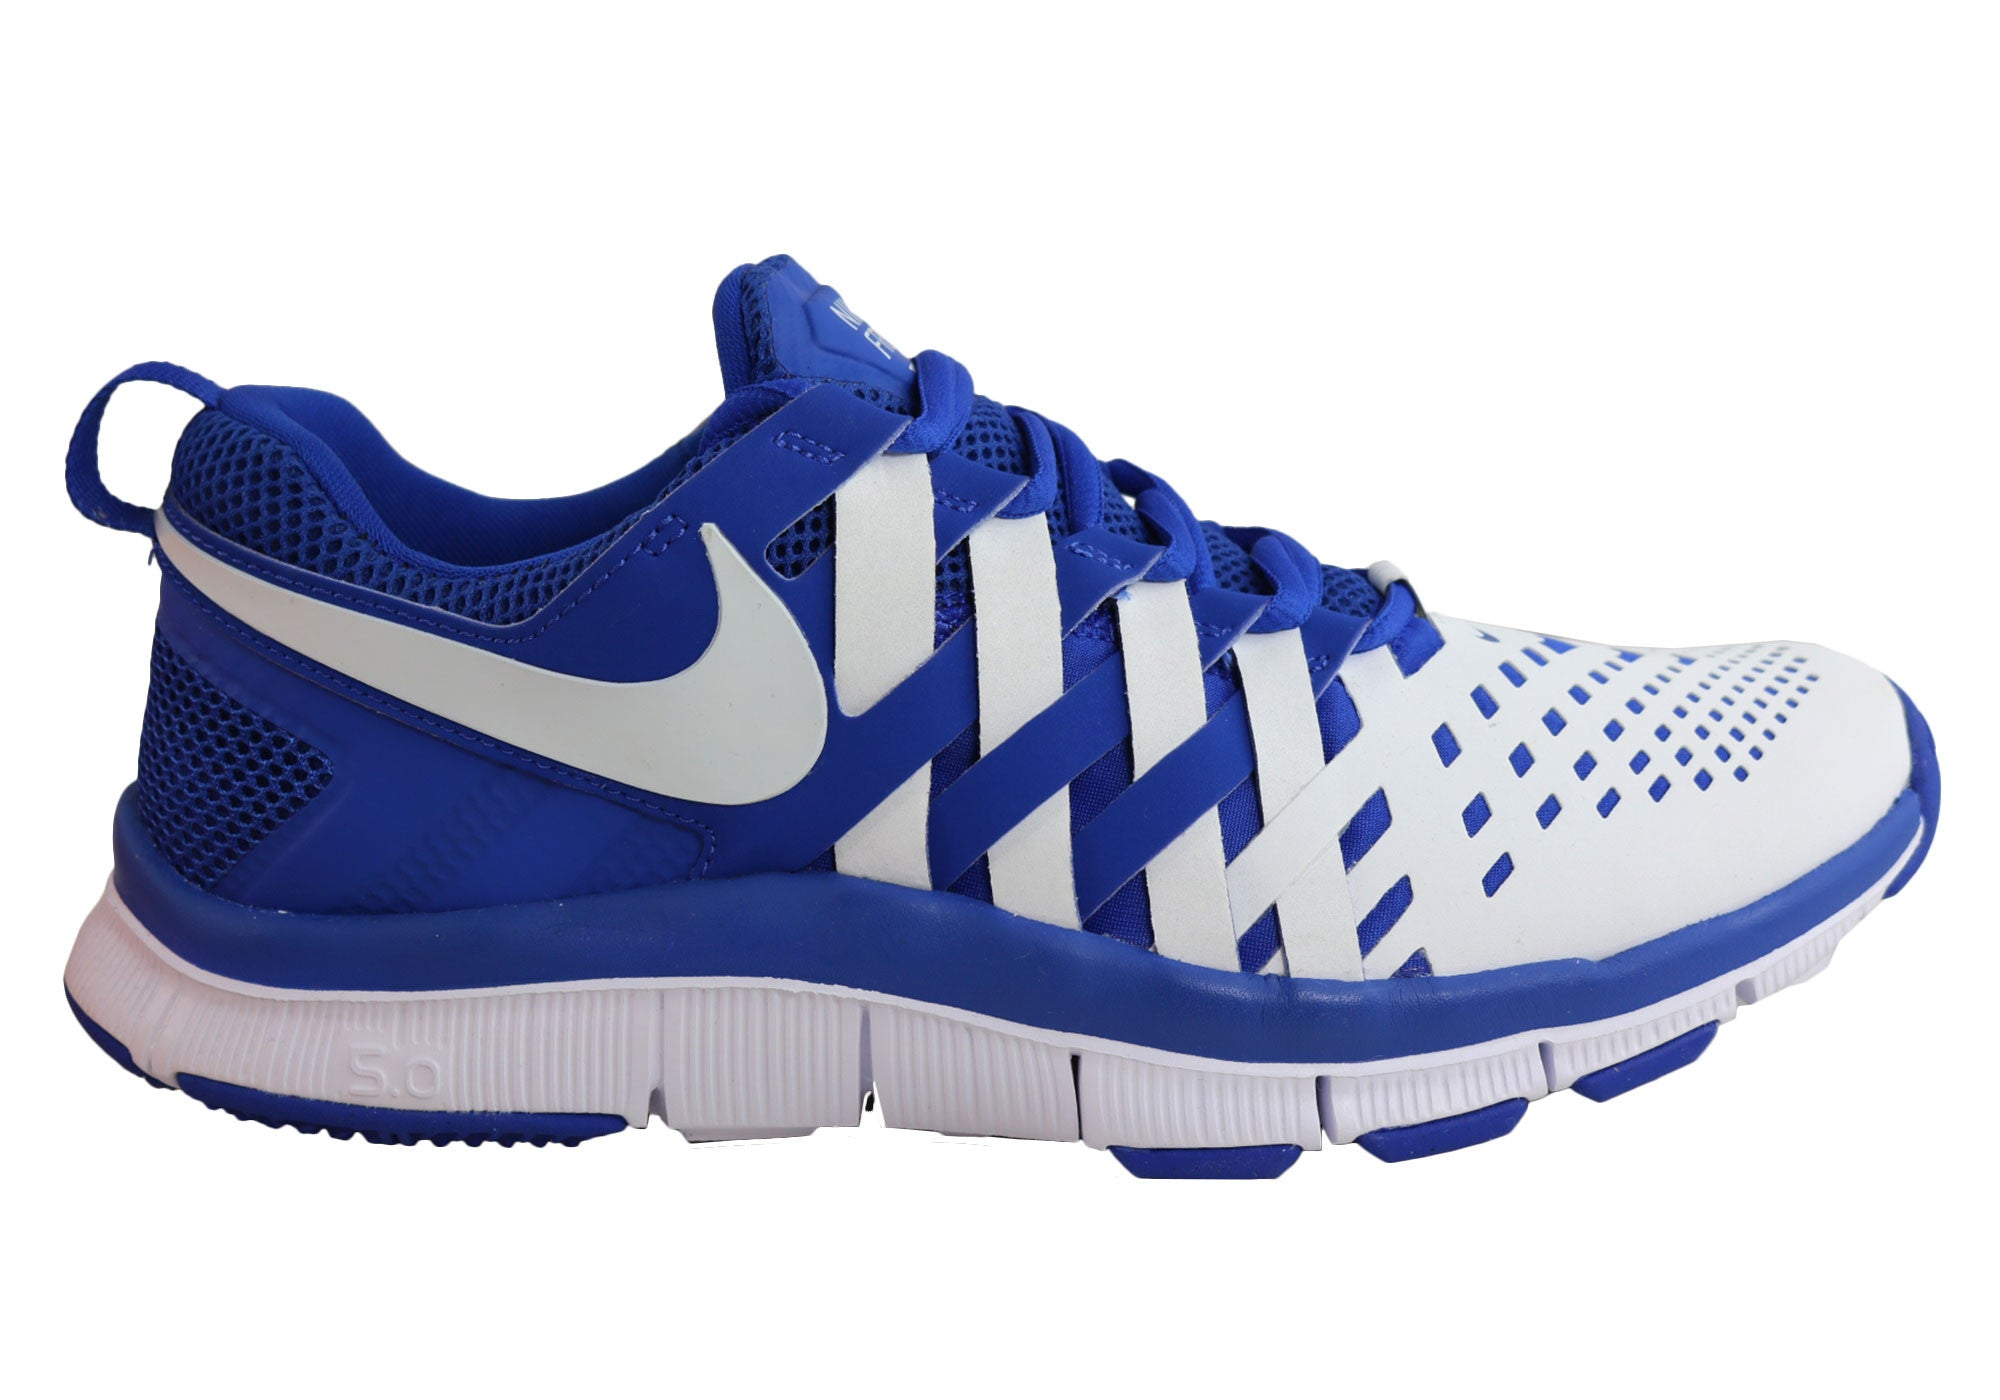 ee3c287c4 Image is loading NEW-NIKE-FREE-TRAINER-5-0-MENS-RUNNING-